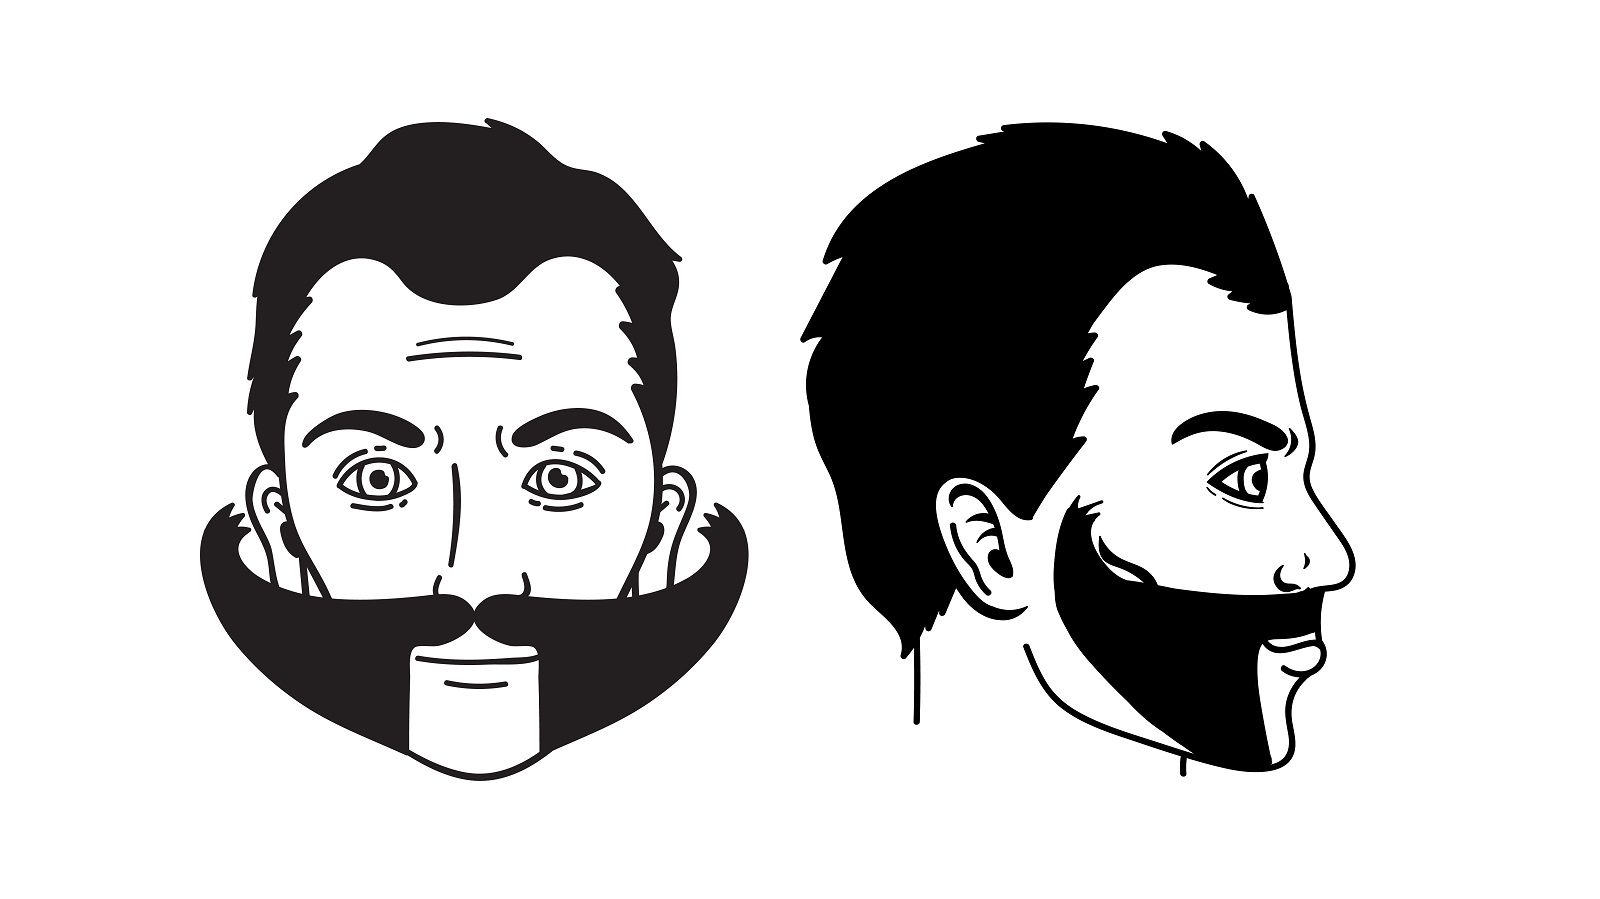 The freestyle mustache, a facial hair style